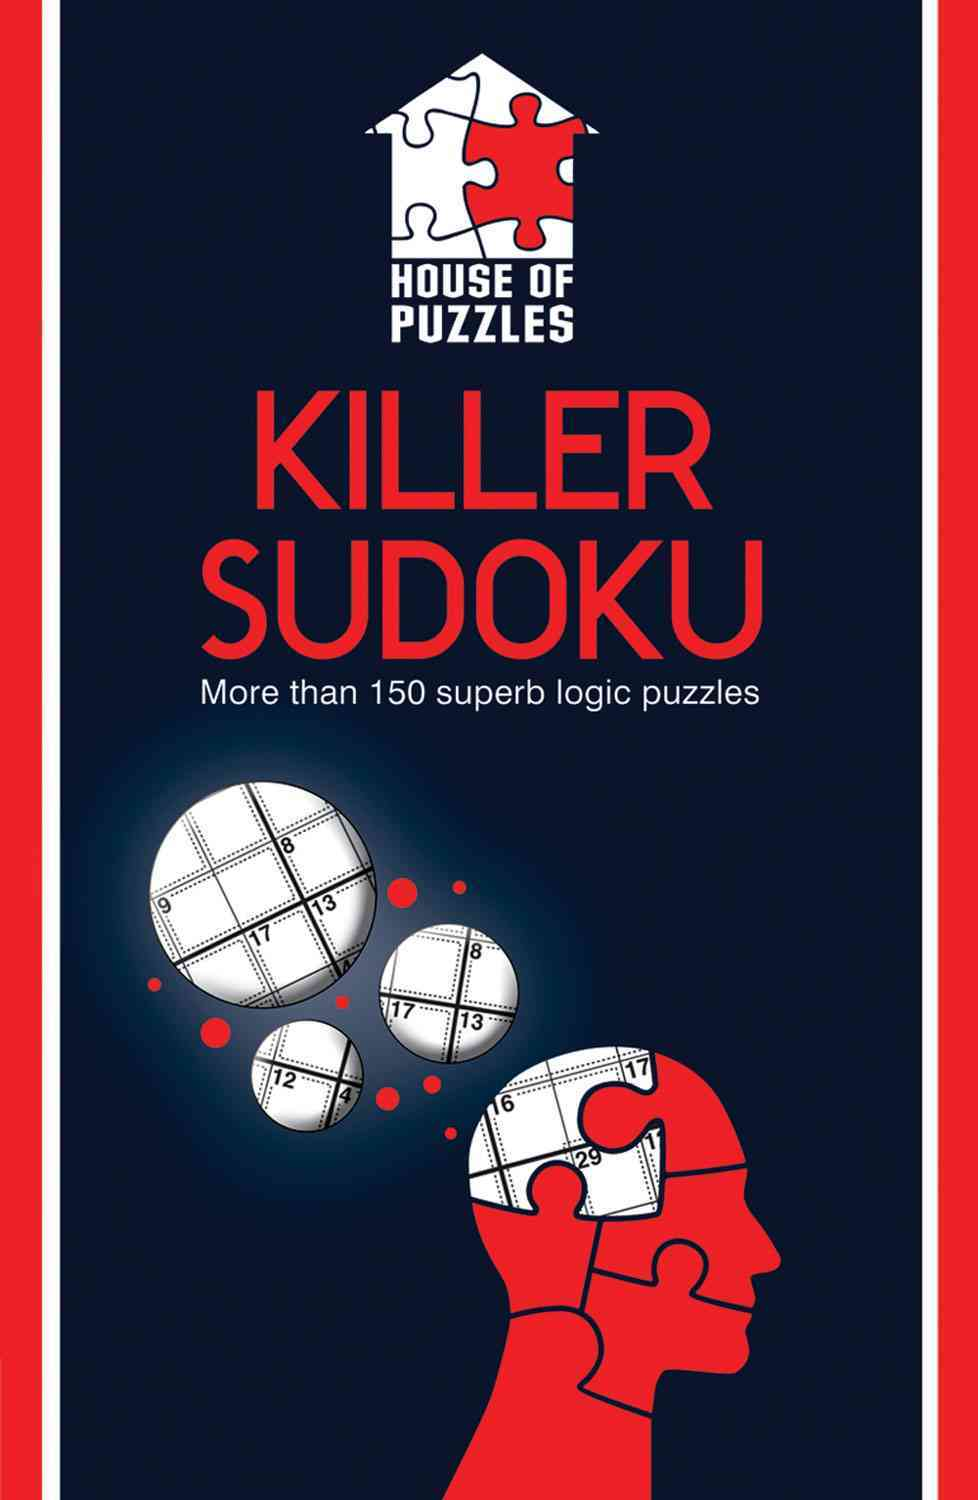 Killer Sudoku By House of Puzzles